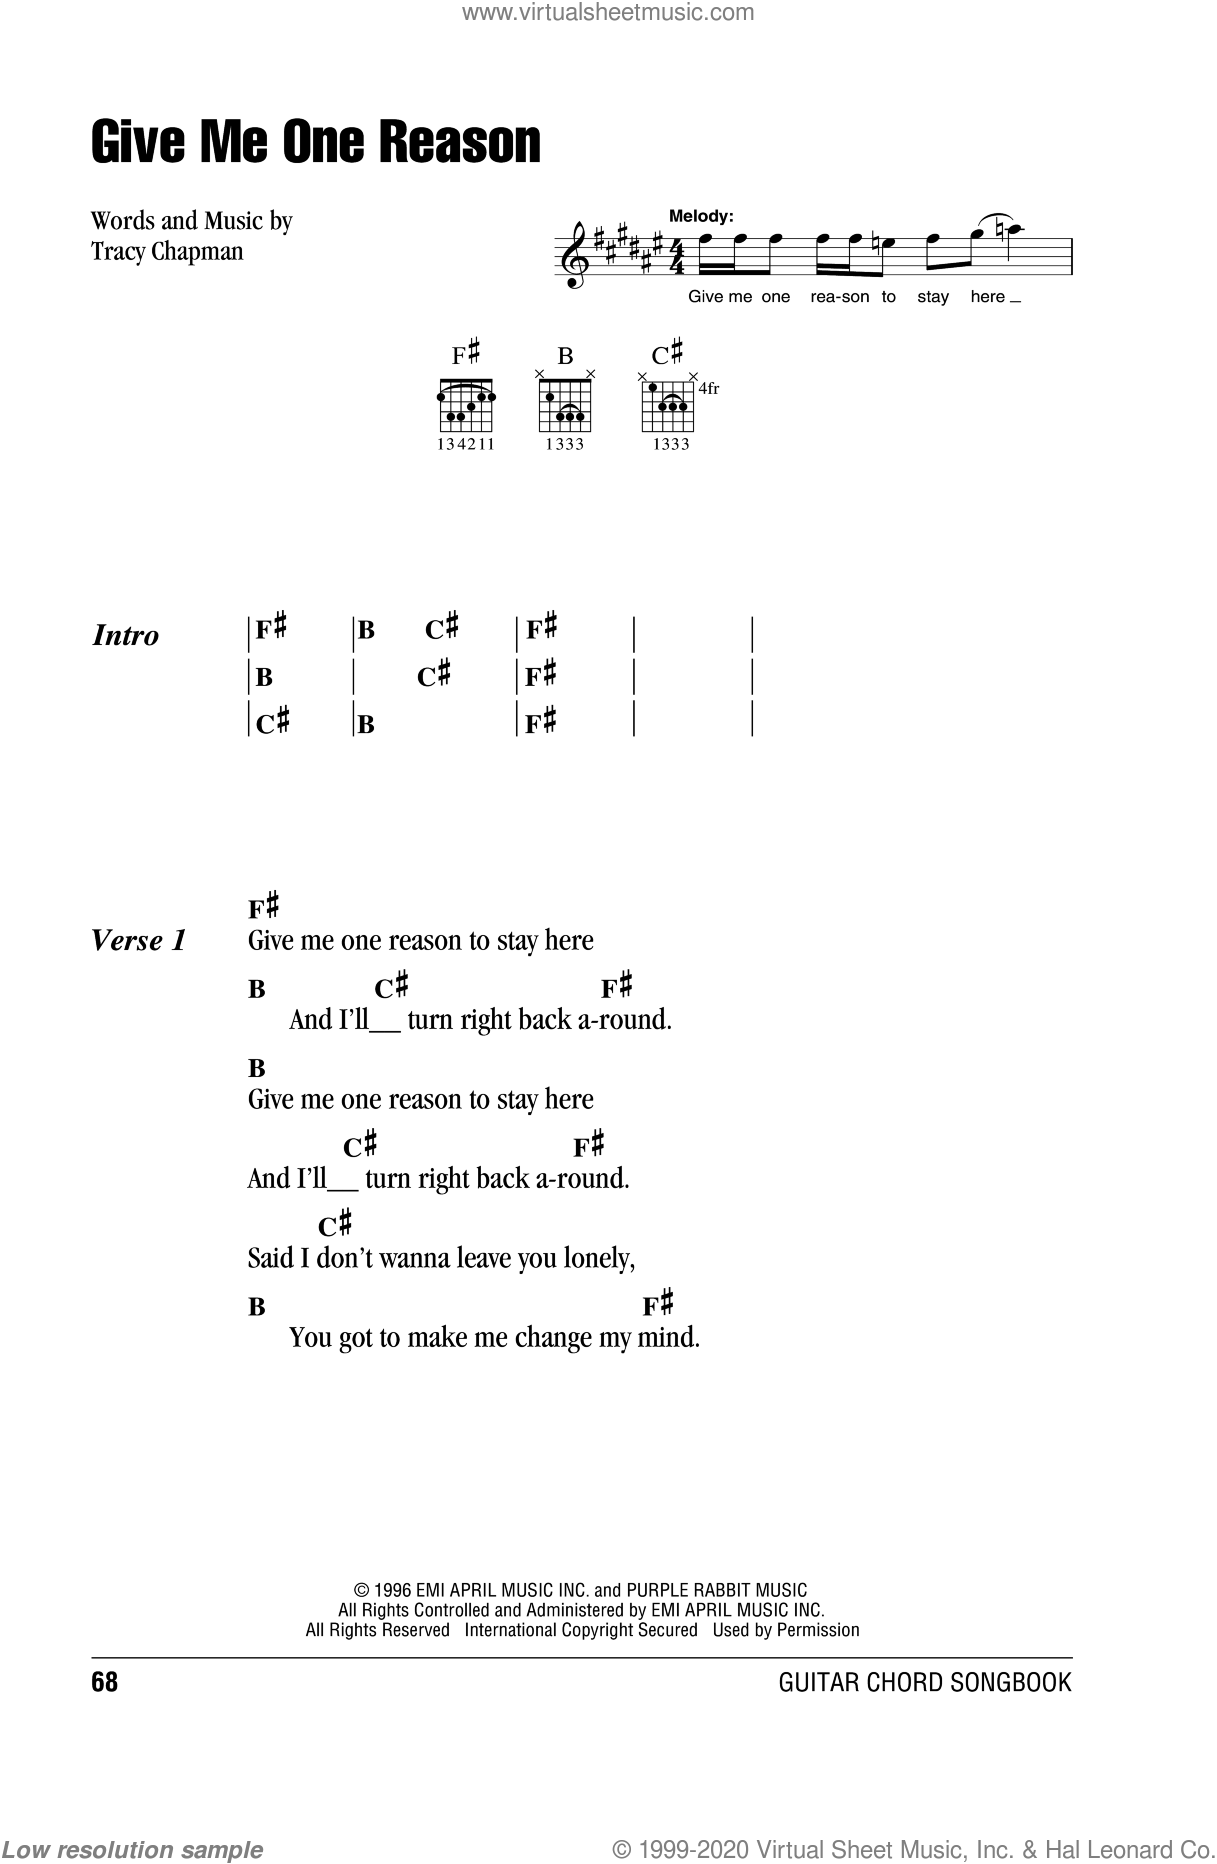 Give Me One Reason sheet music for guitar (chords) by Tracy Chapman